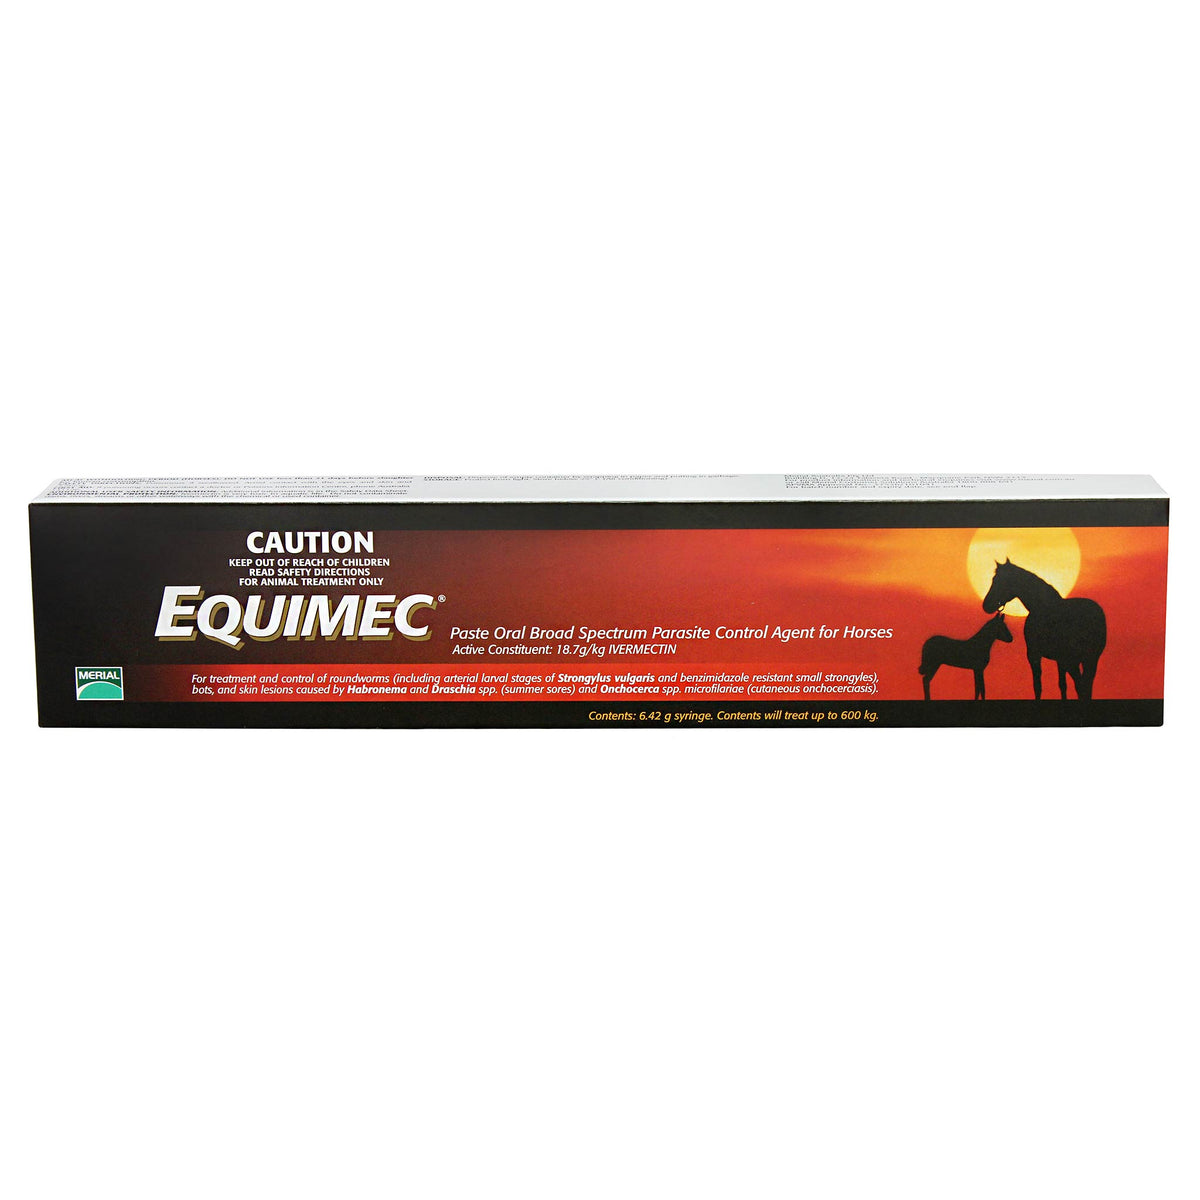 Equimec Broad Spectrum Parasite Control Paste for Horses 6.42g